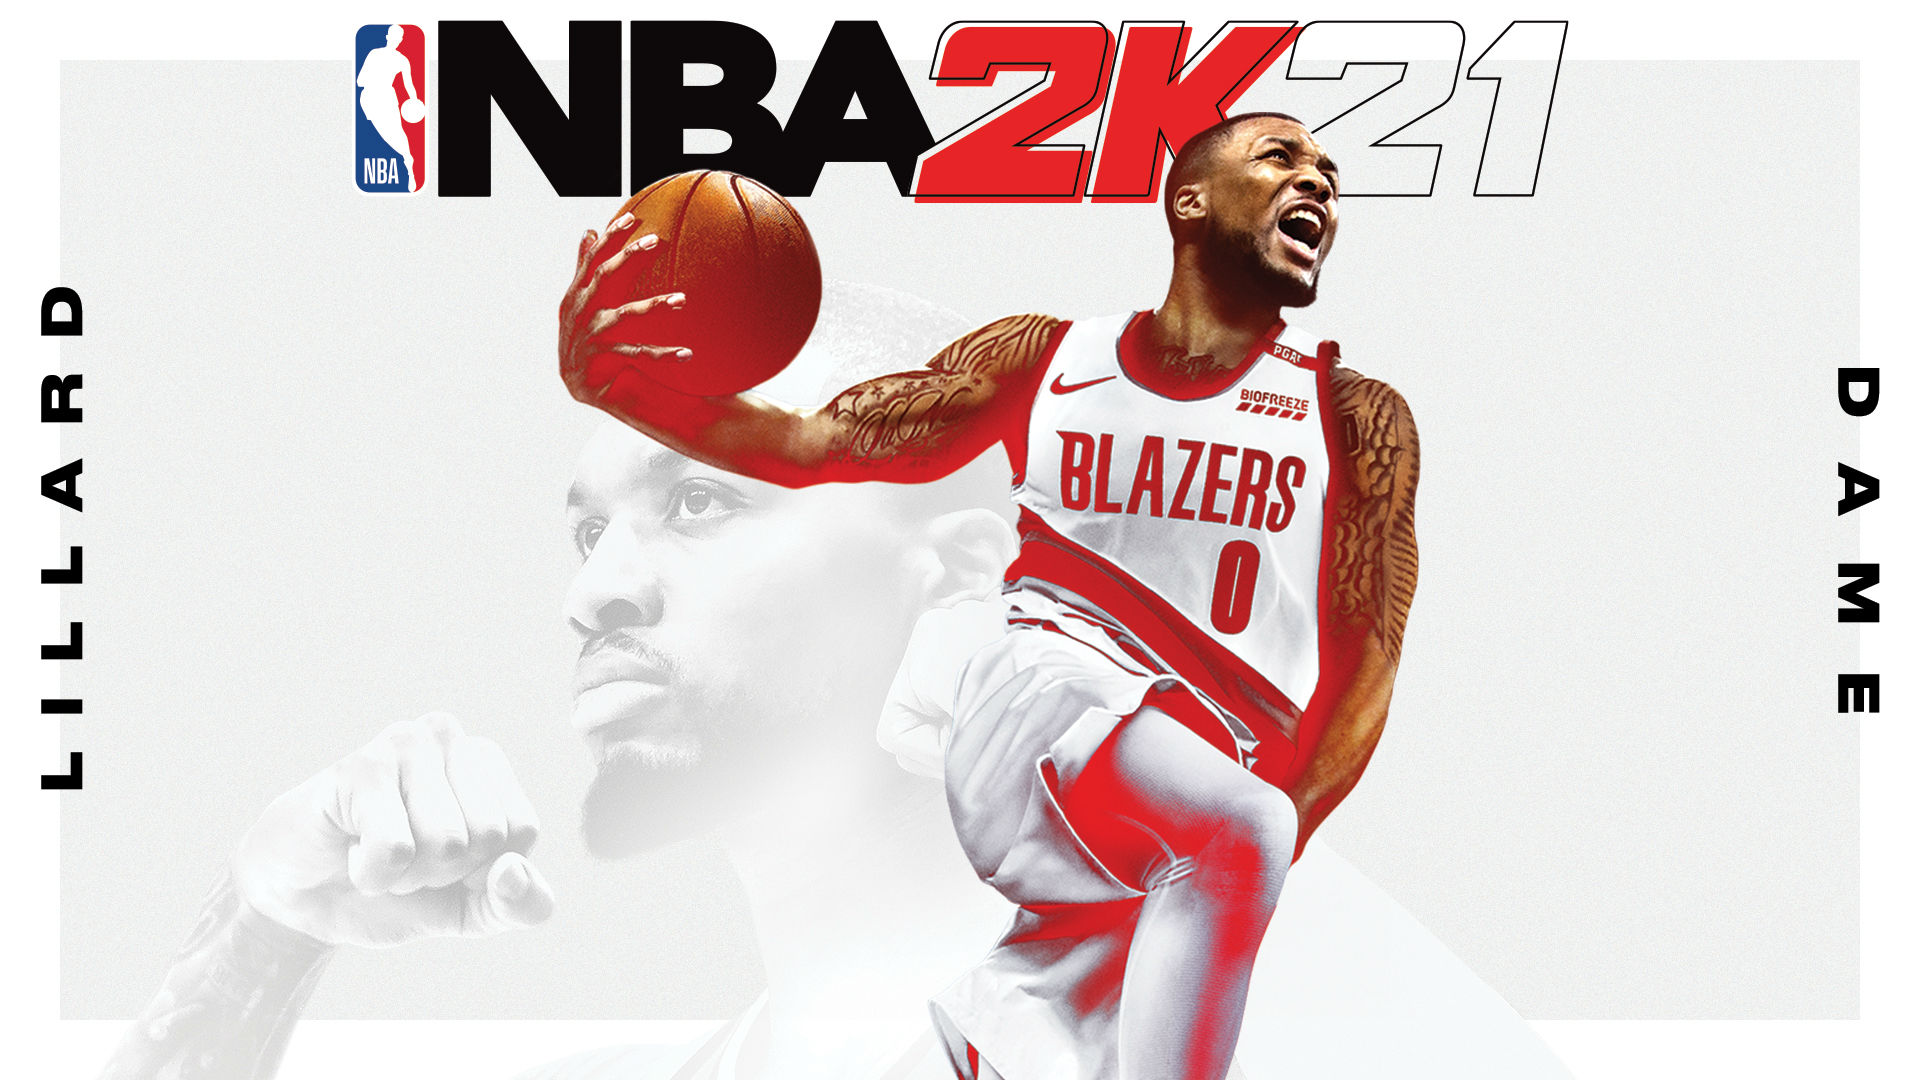 NBA 2K21 release date, preorder price, cover athletes & more: A guide to everything you need to know 1